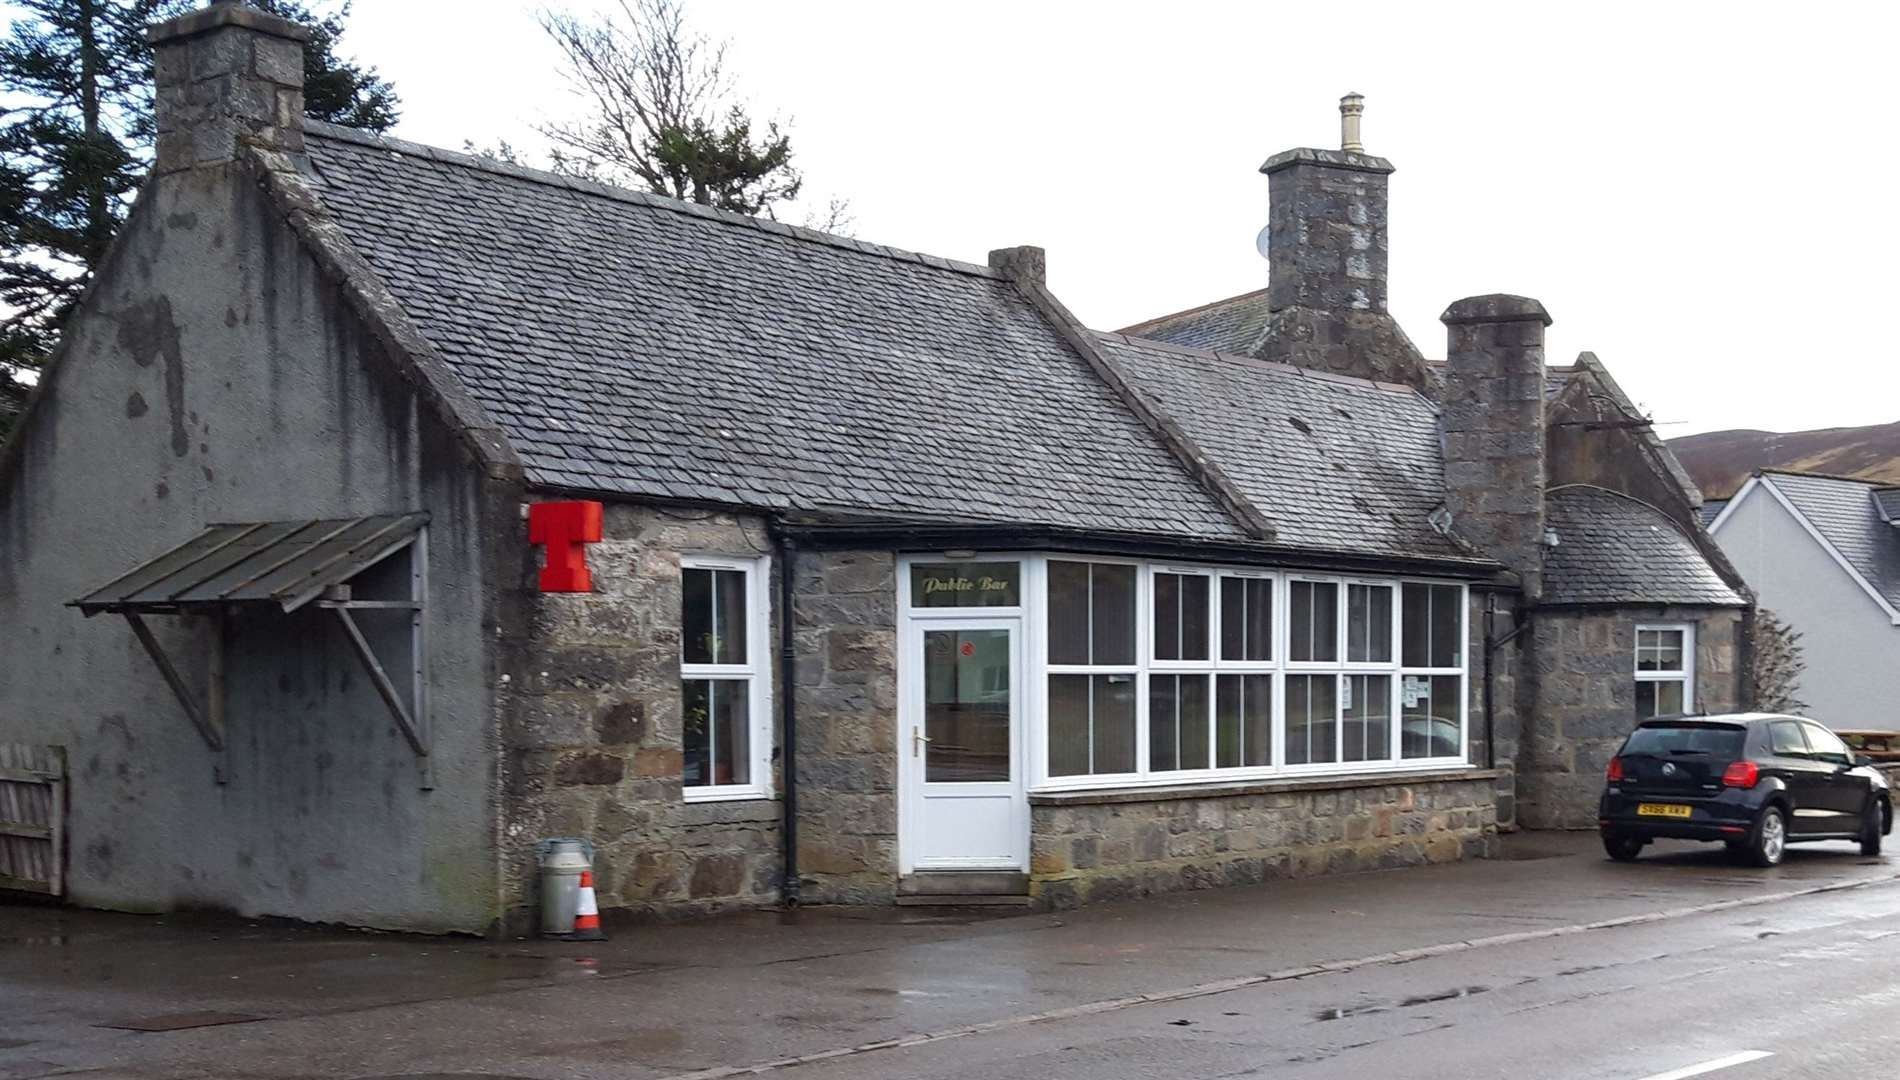 The Pittentrail Inn provided a hub for the Rogart community prior to its closure.